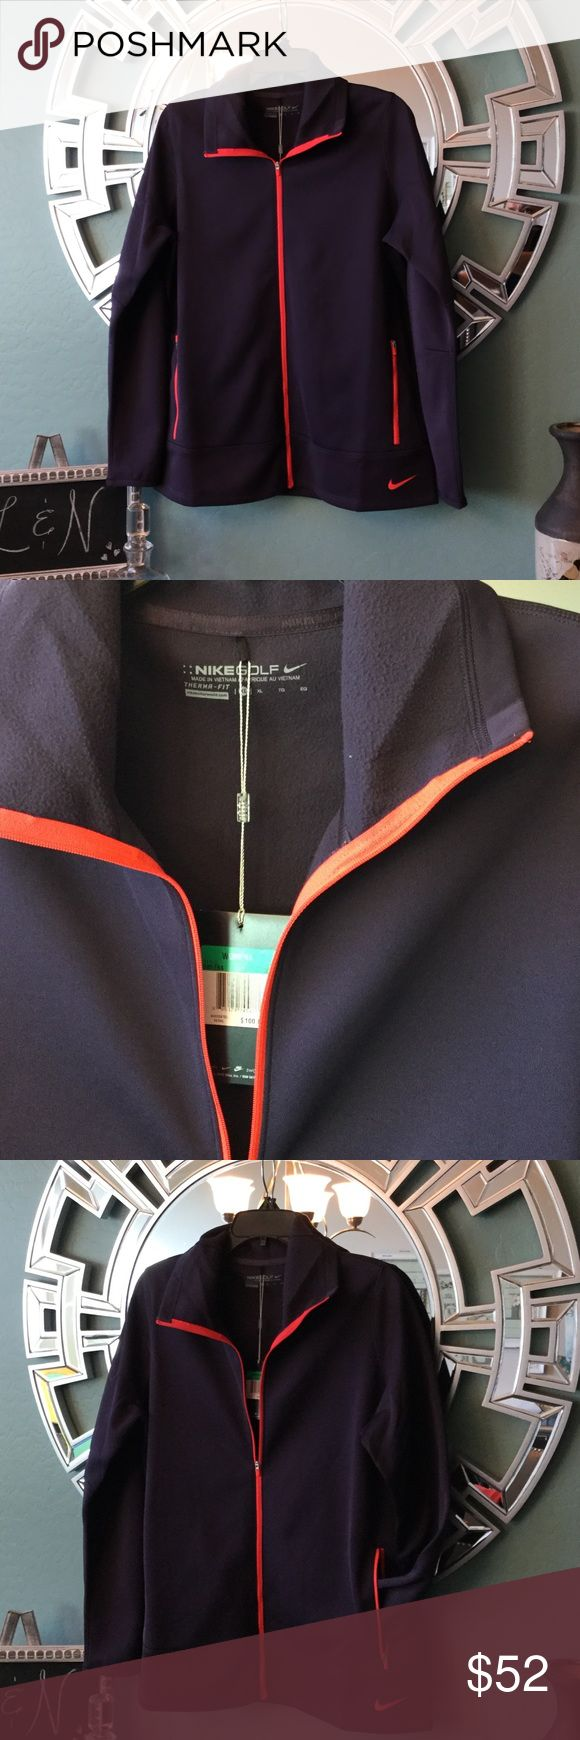 NIKE women's Golf Jacket Amazing Nike Golf Jacket. Size XL so pretty and light. Can be worn as a layer piece. Lovely purple with neon trim. 2 inside pockets. All resealable offers considered. Nike Jackets & Coats